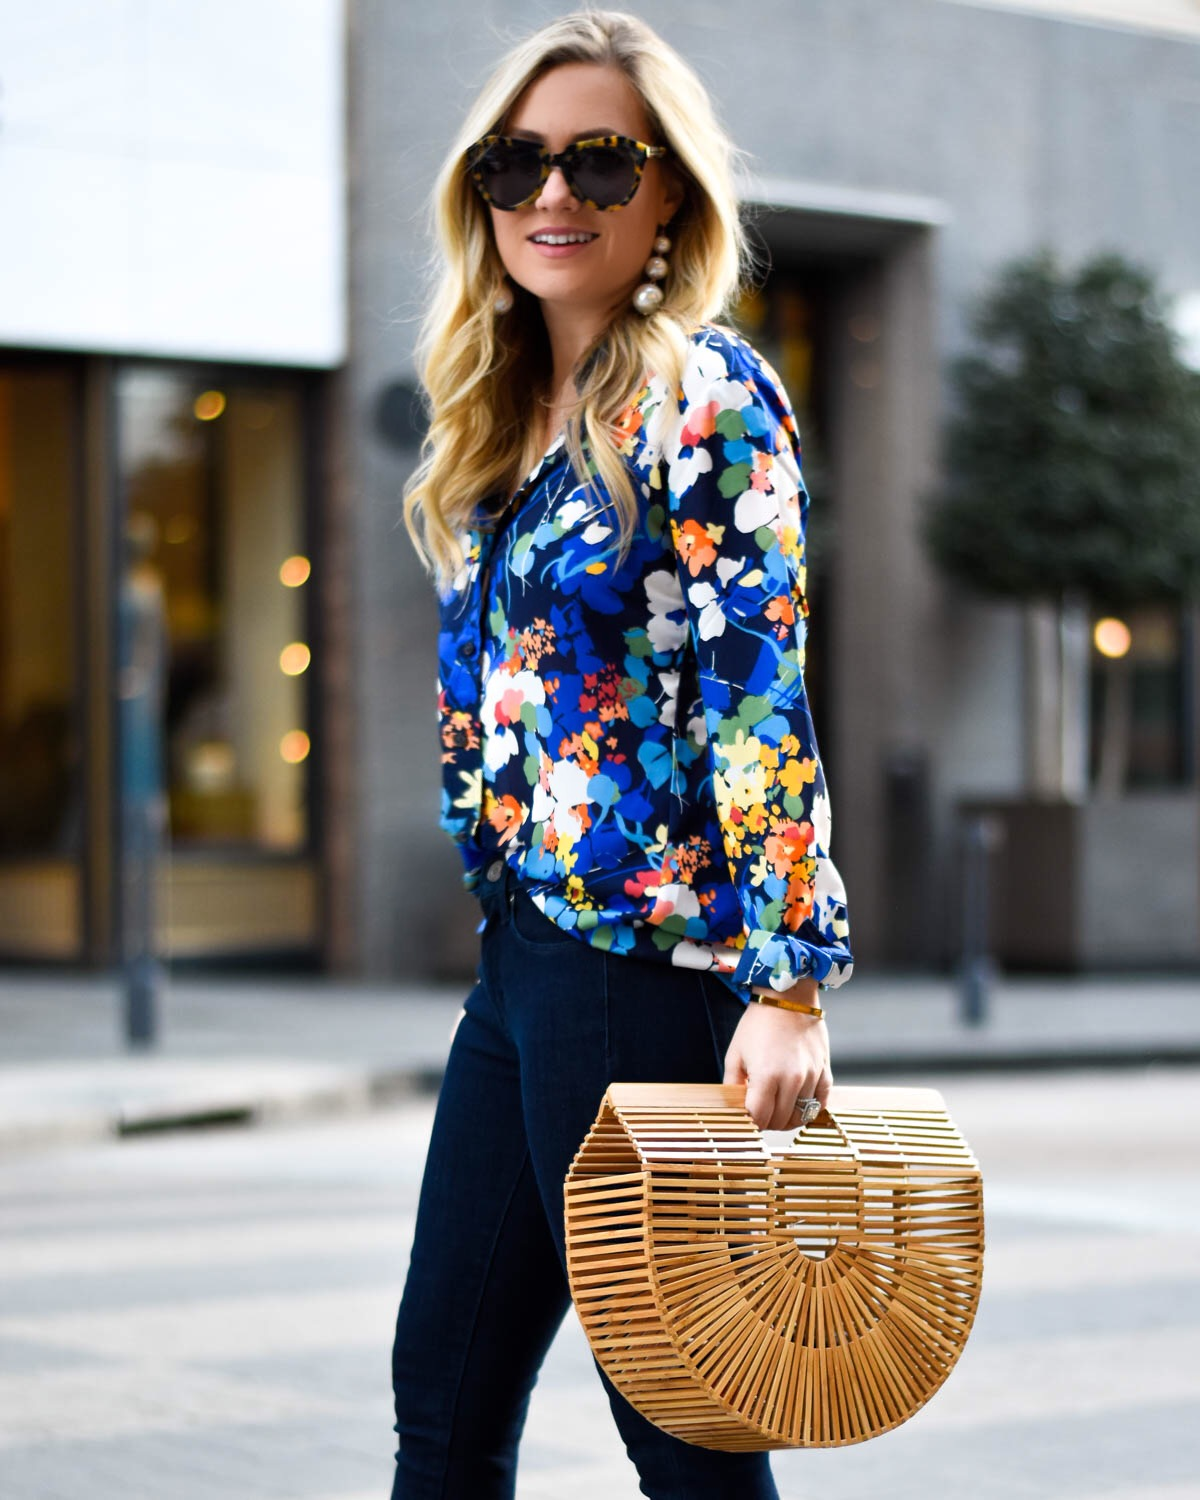 Banana-Republic-Jeans, Banana-Republic-Blouse, What-moves-you, Floral-blouse